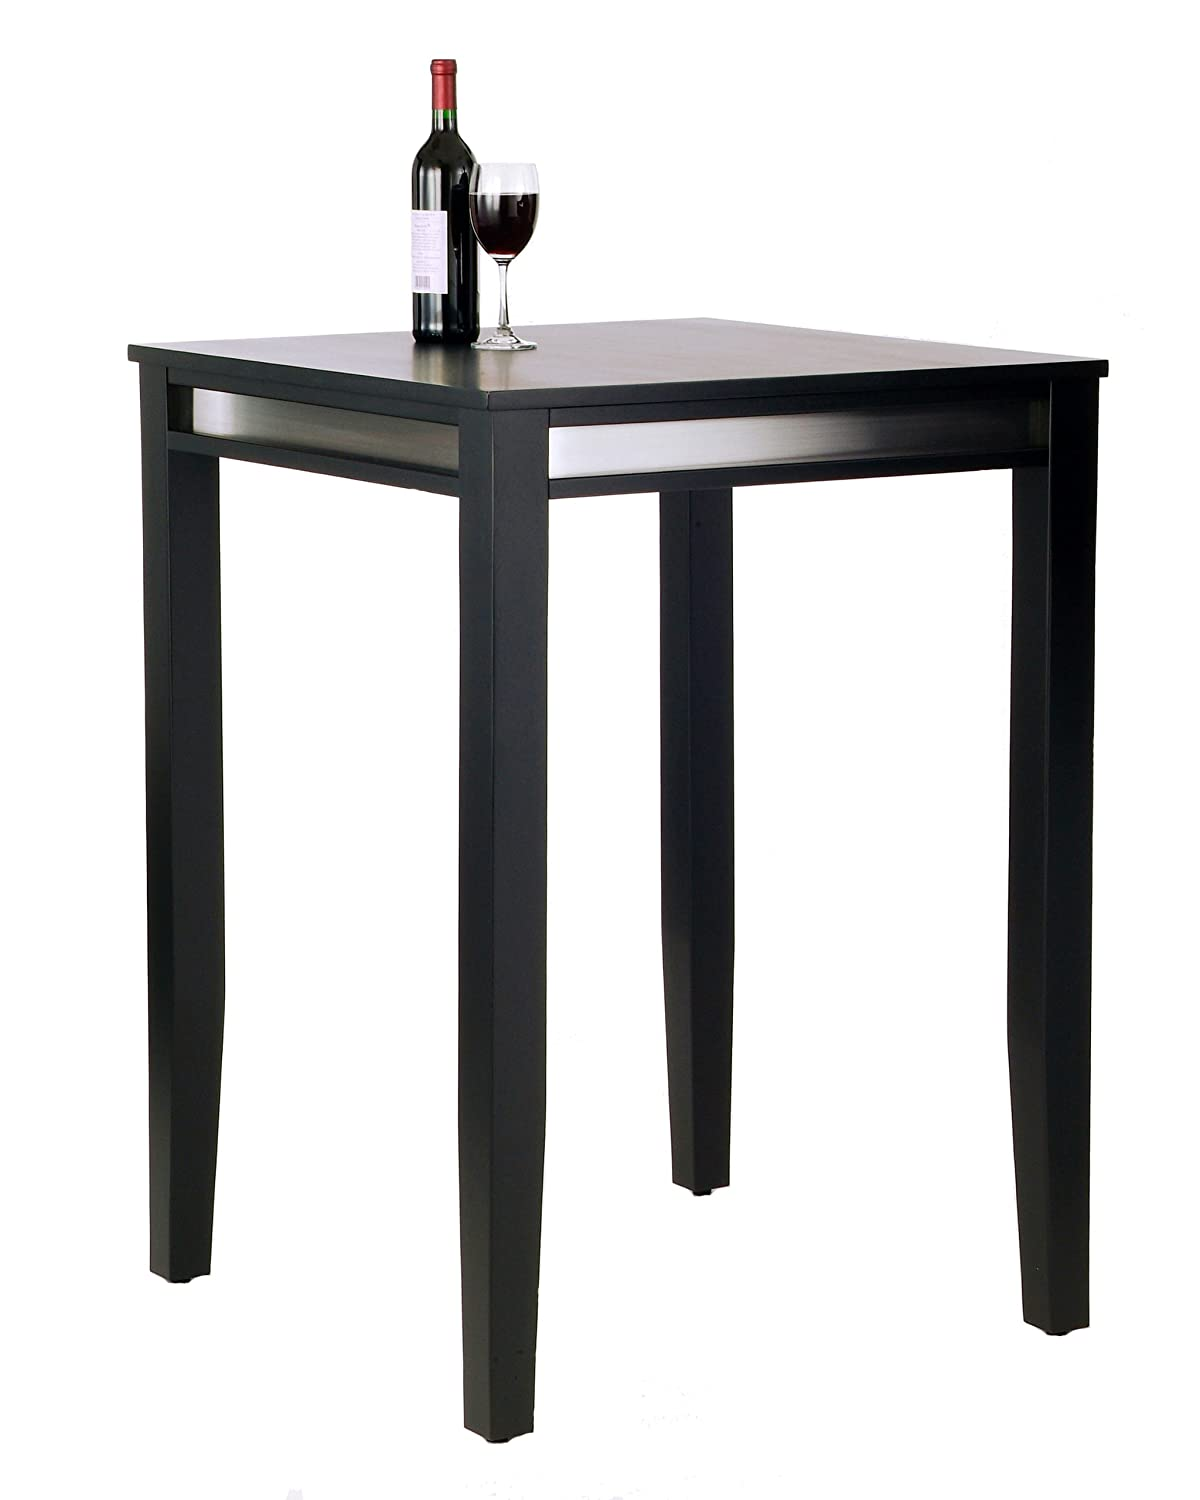 sc 1 st  Amazon.com & Amazon.com: Home Styles Manhattan Pub Table Black: Kitchen u0026 Dining